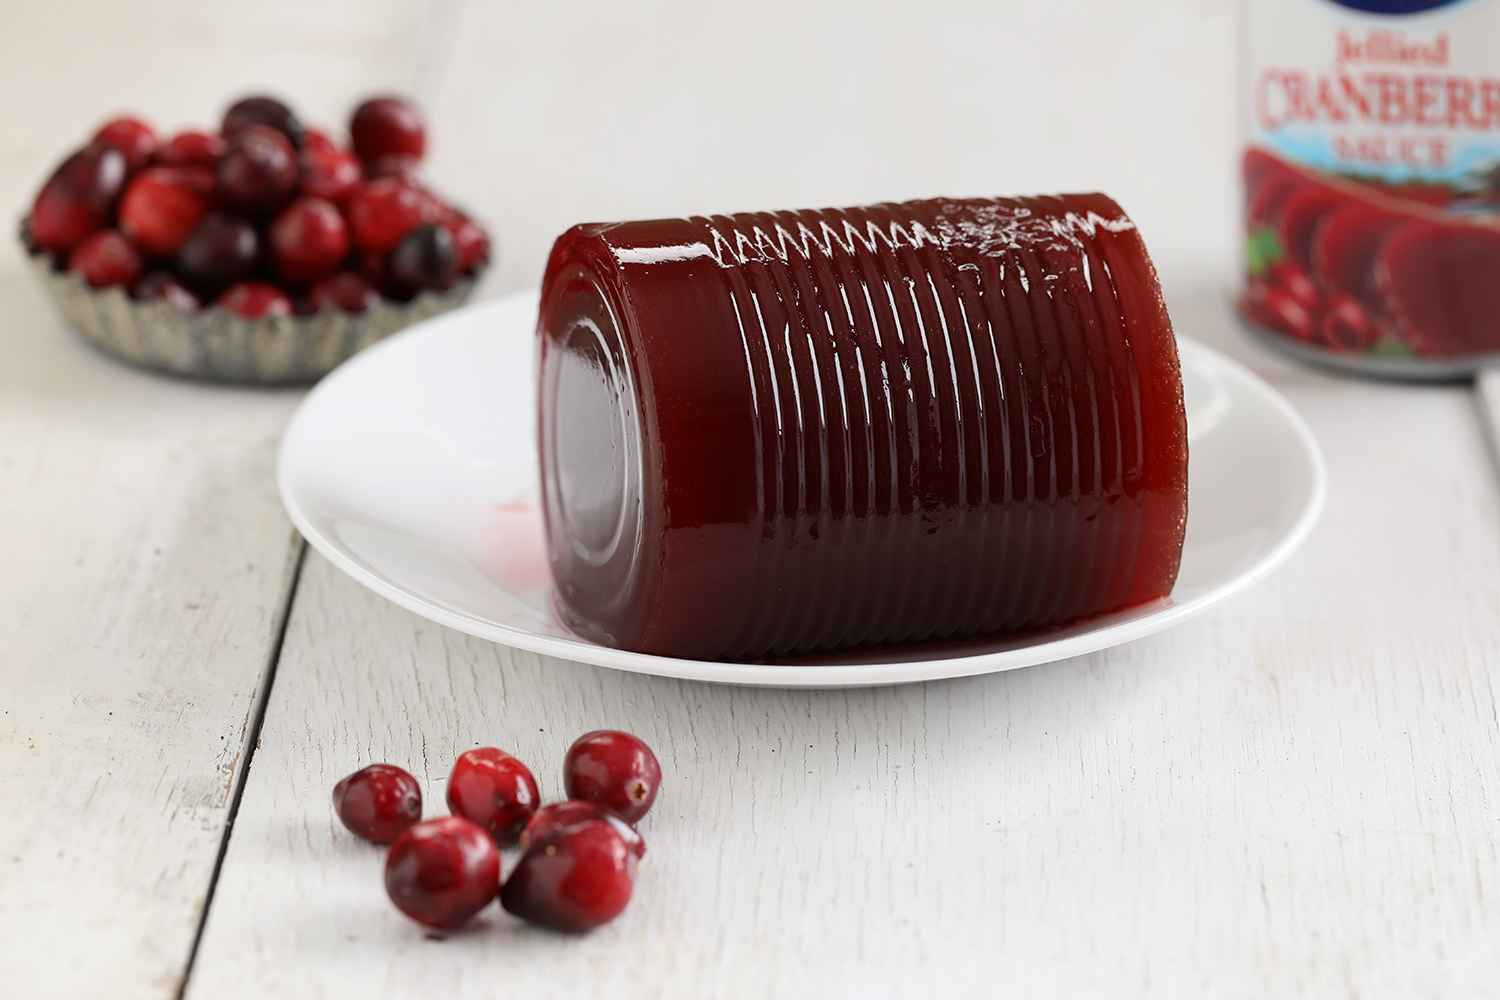 Red cranberry jelly from a can sitting upon a white place surrounded by cranberries.